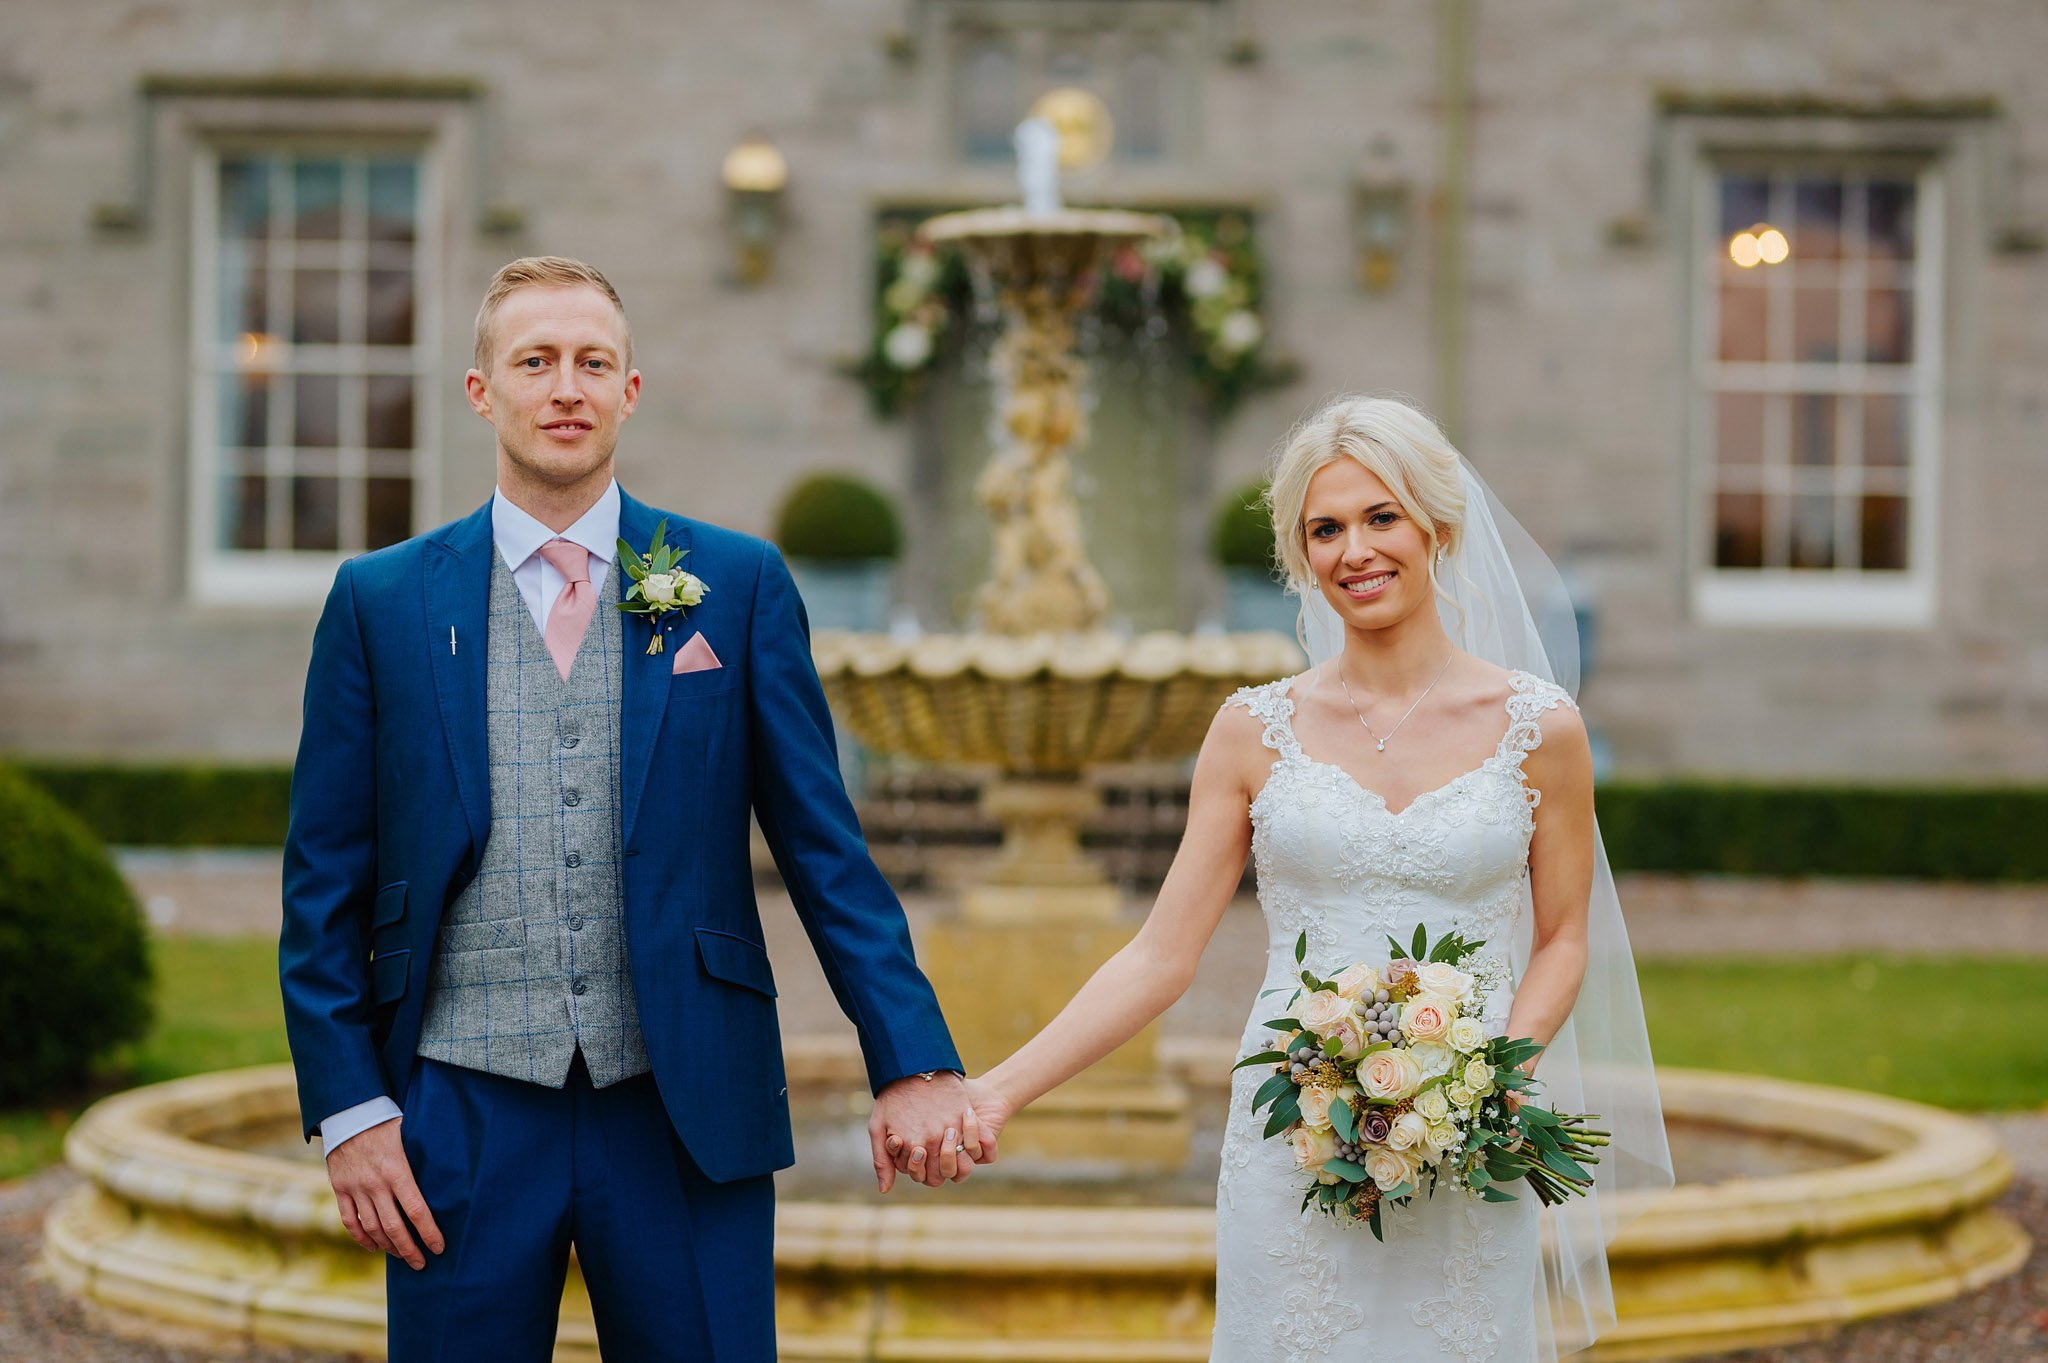 Lemore Manor wedding, Herefordshire - West Midlands | Sadie + Ken 80